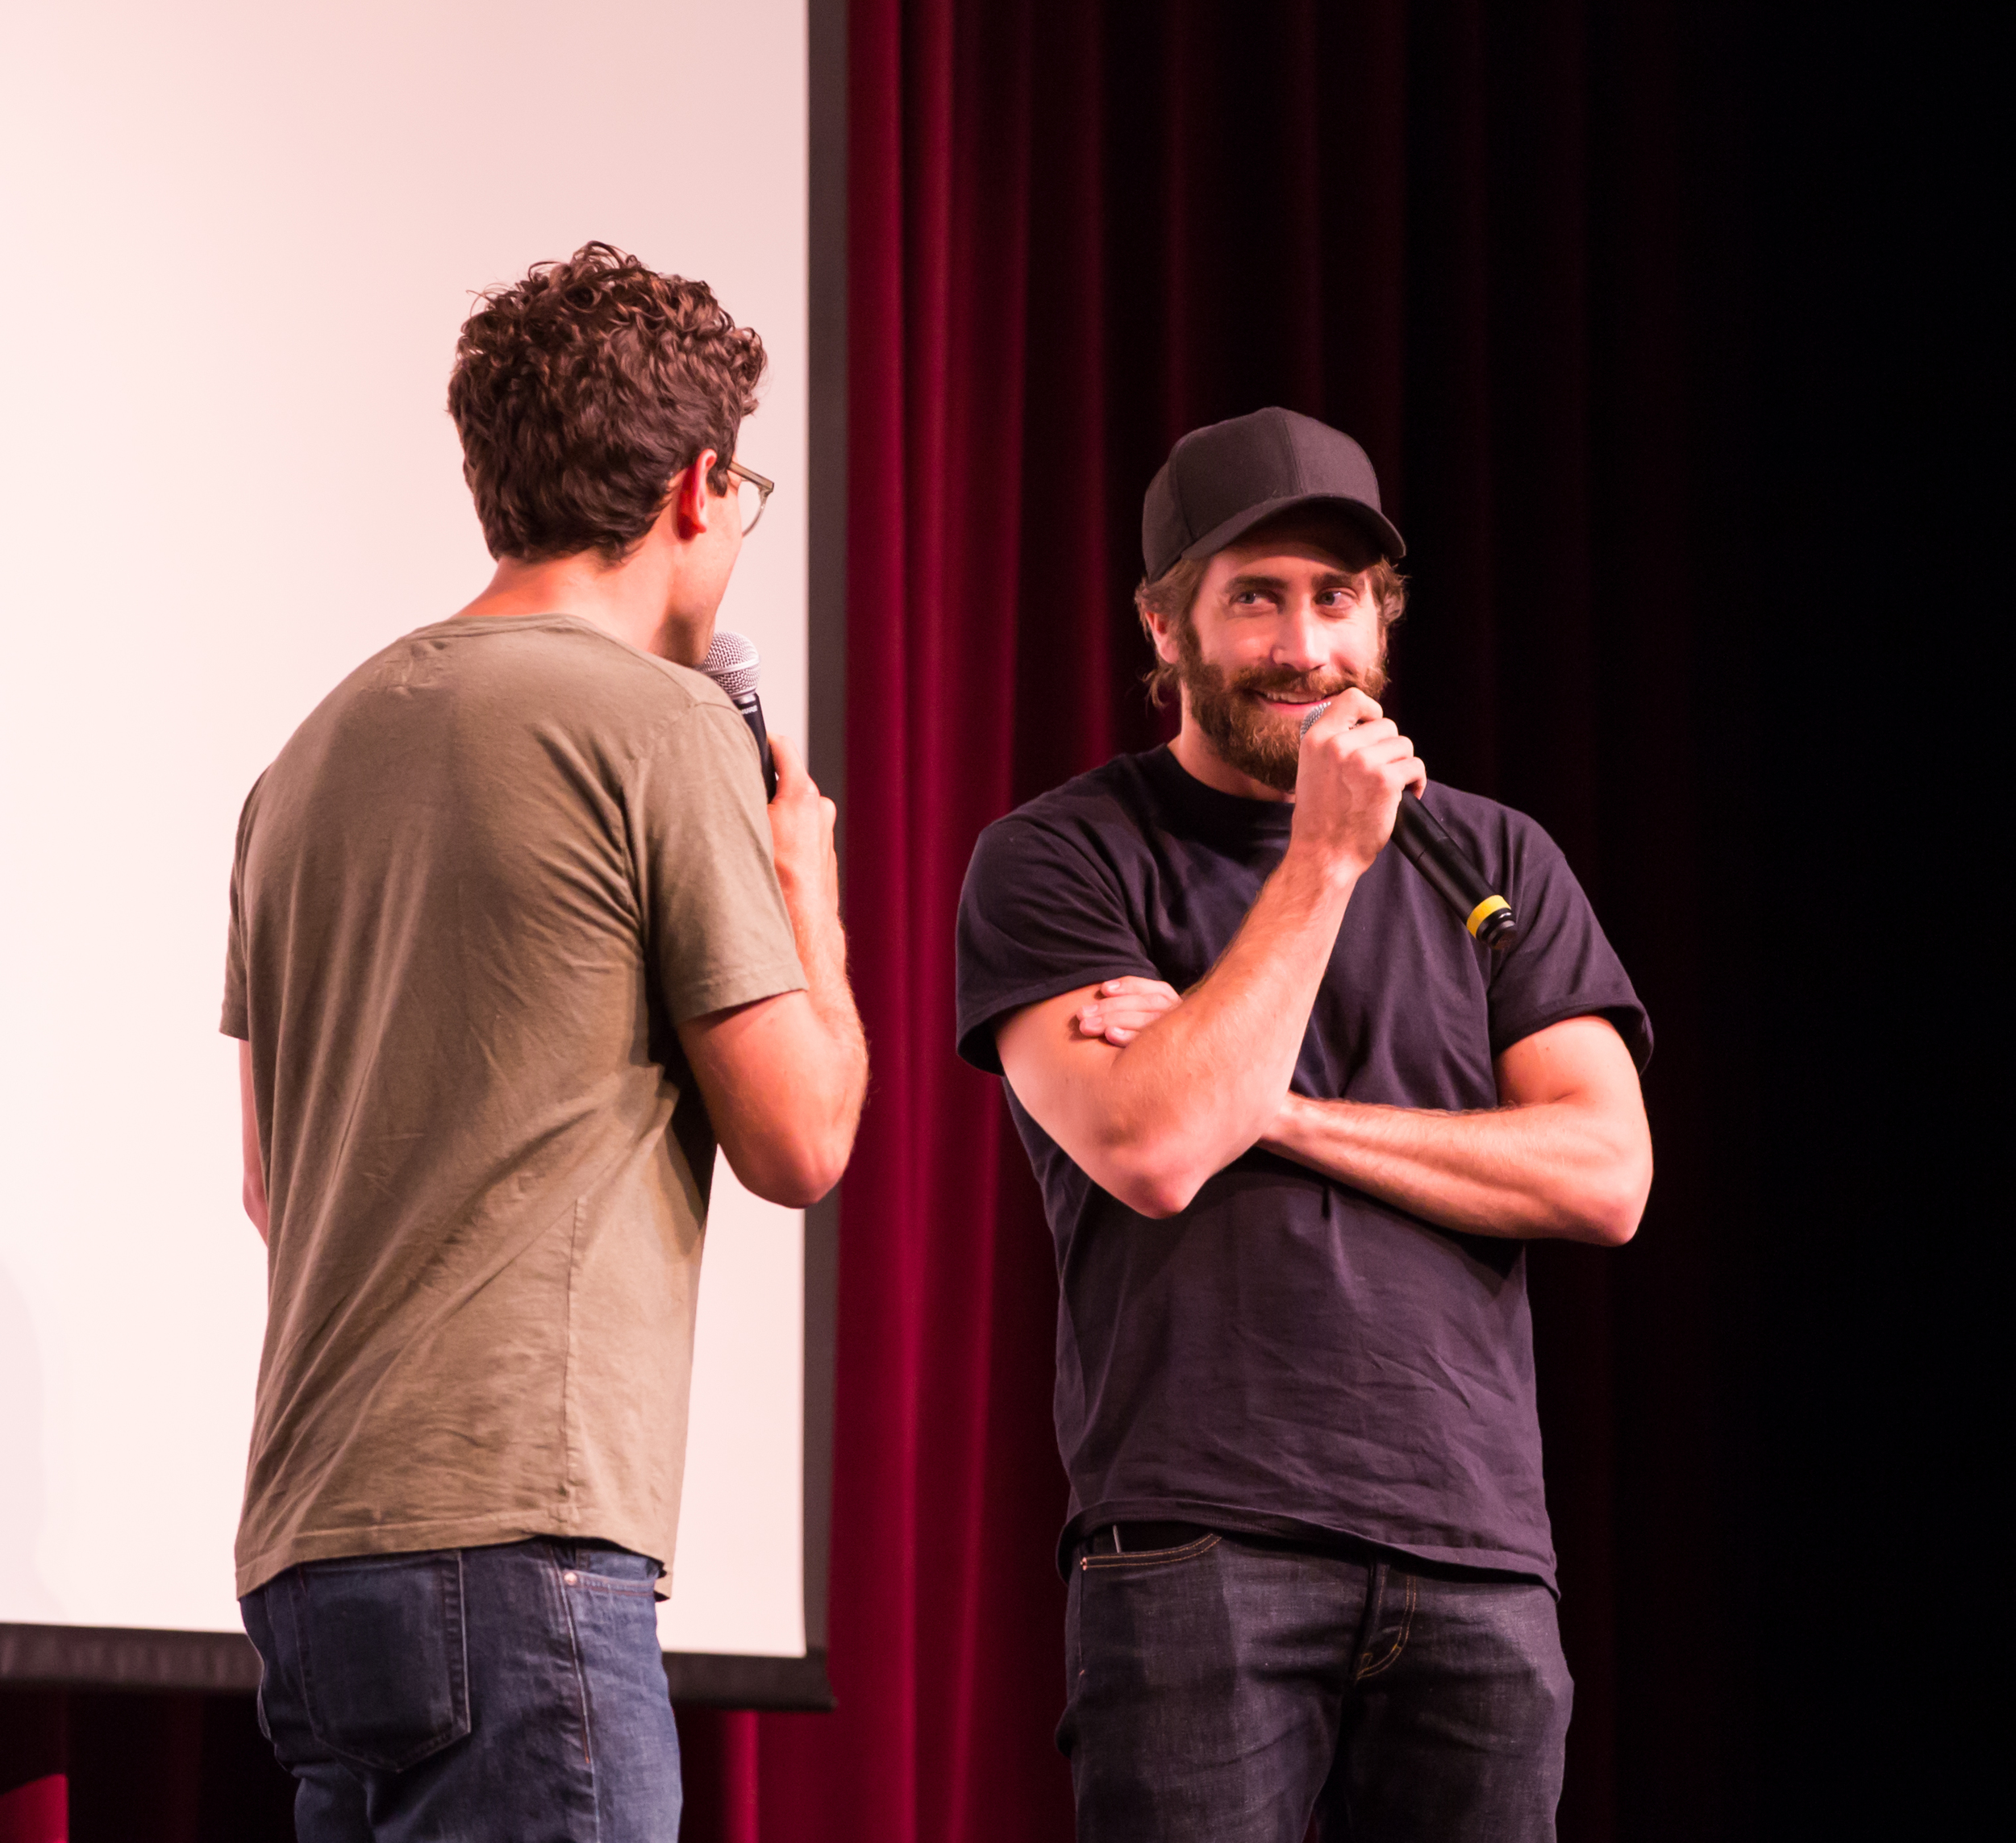 Moderator Jacob Soboroff and actor Jake Gyllenhaal in the Q&A after the screening of SOUTHPAW on July 5, 2015. Photo by Maria Thibodeau